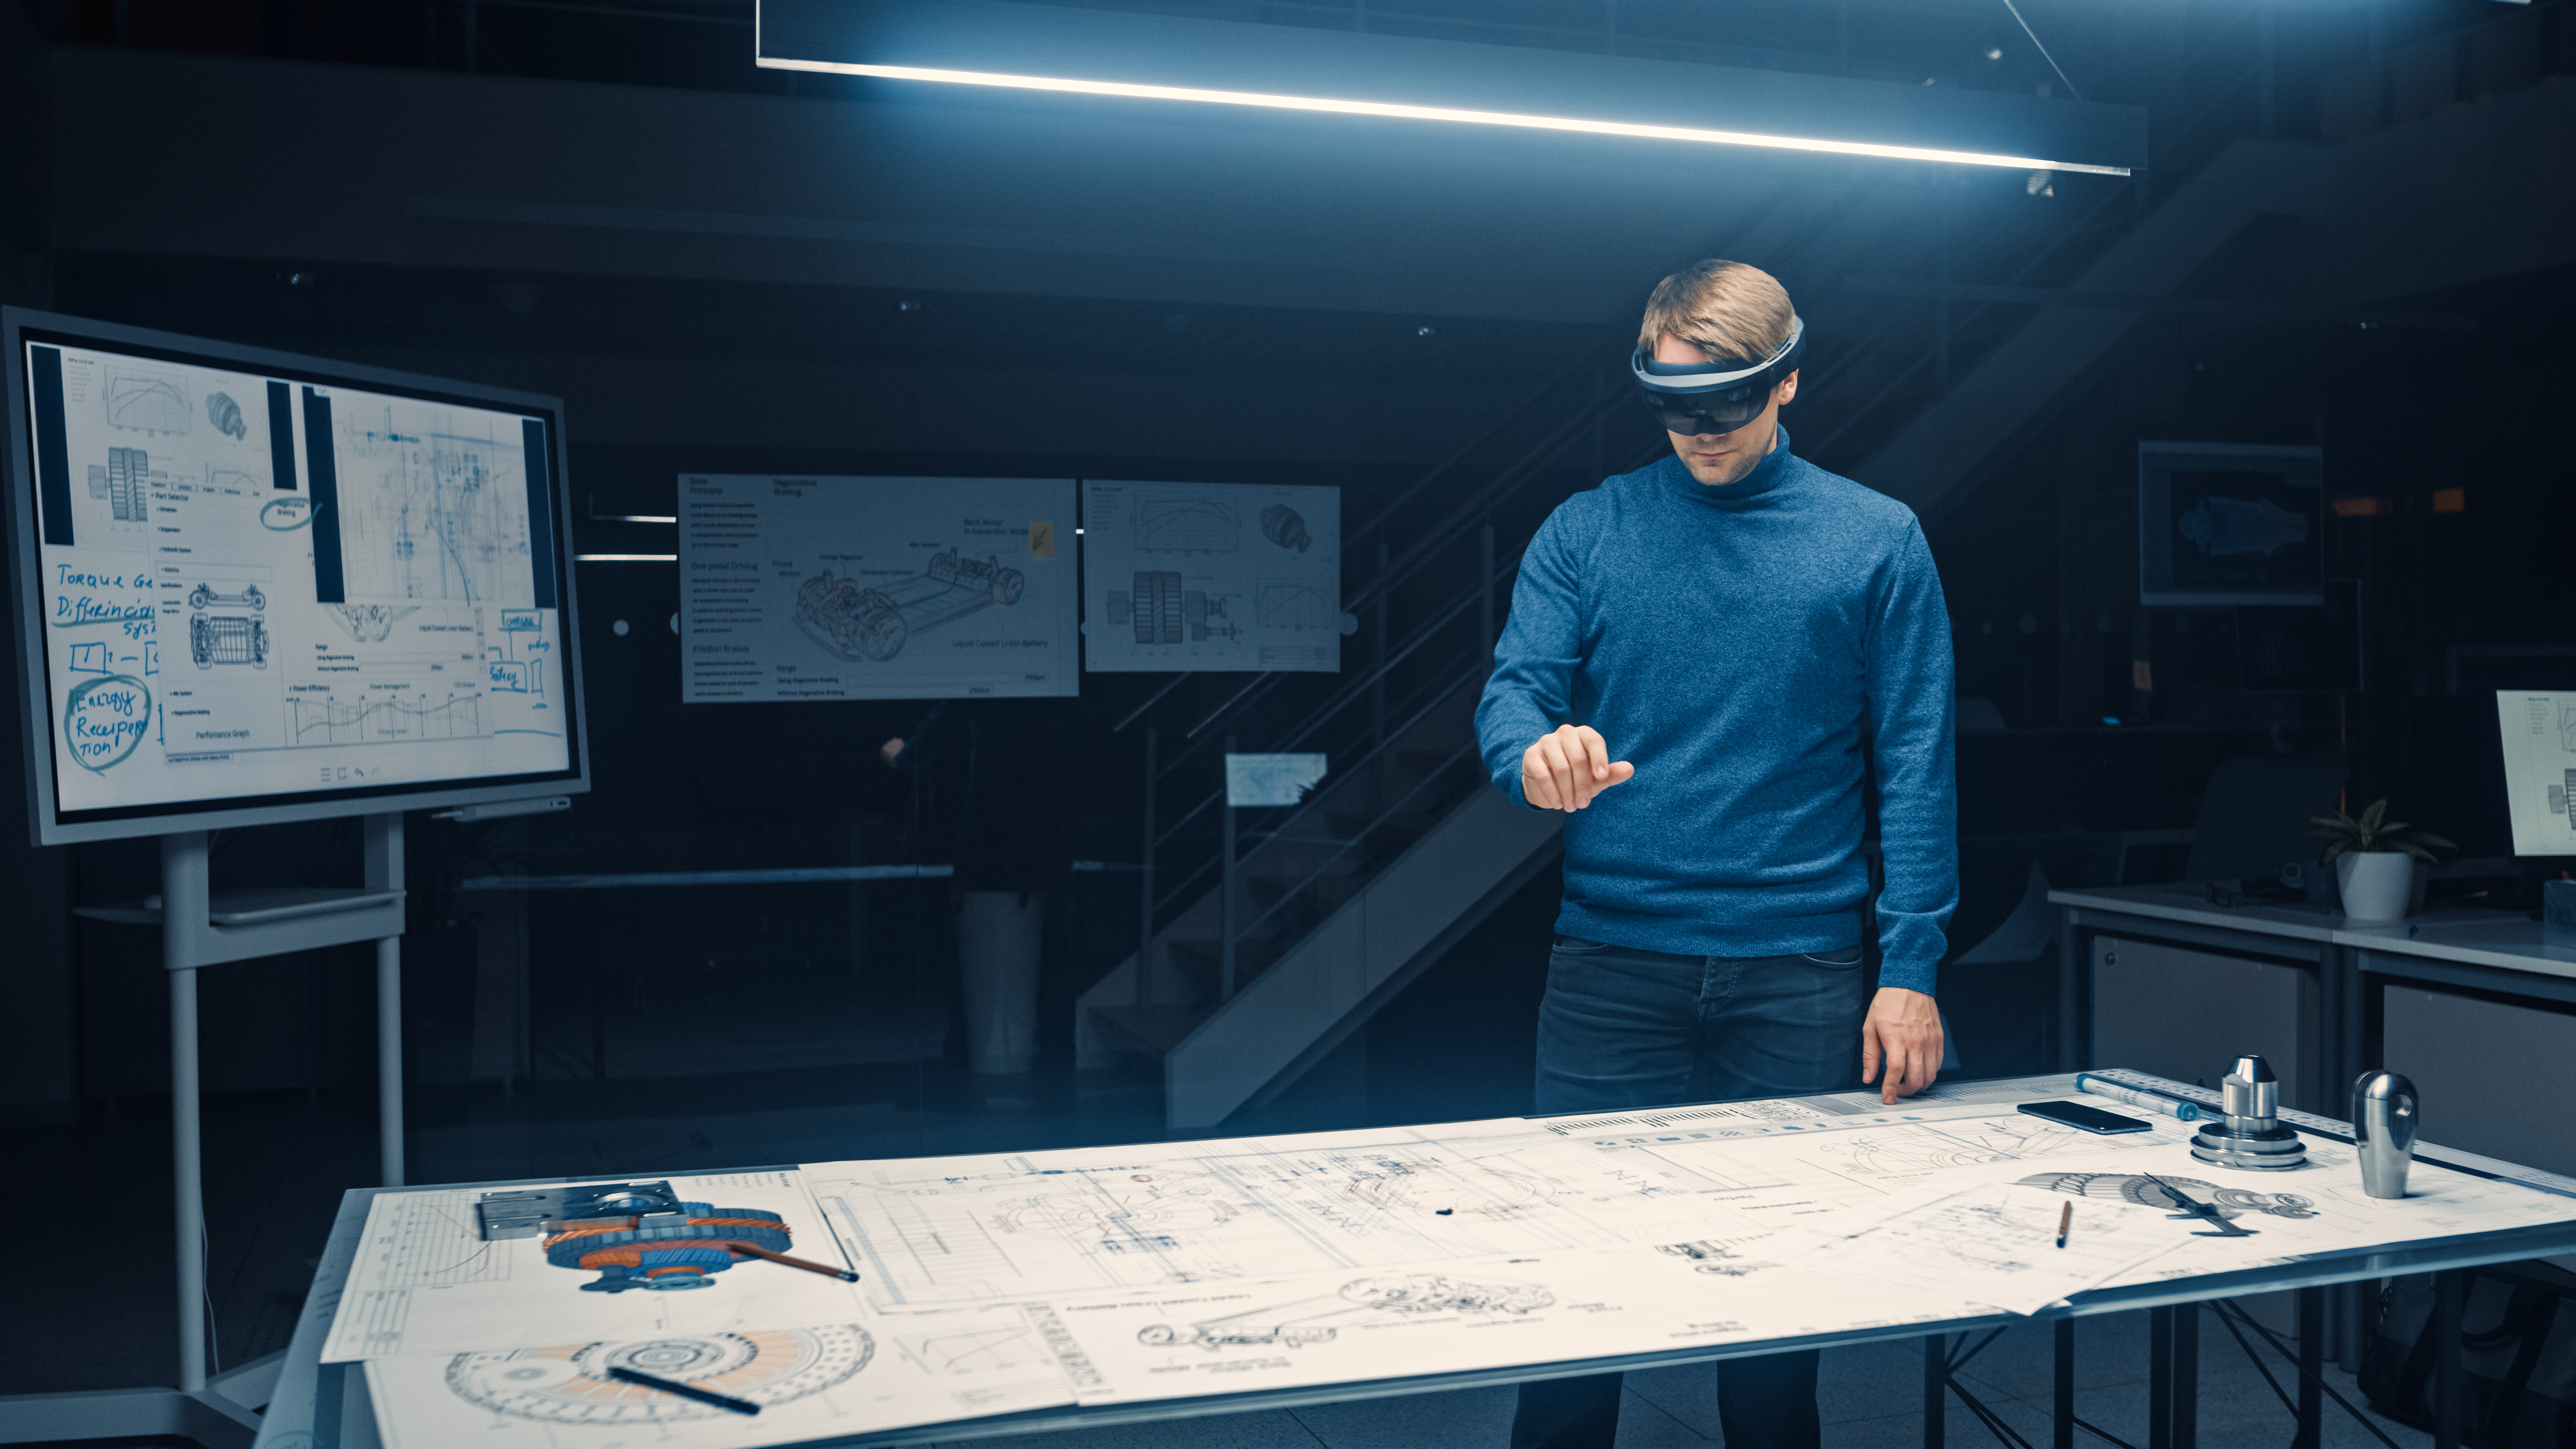 augmented reality application for automotive design and production